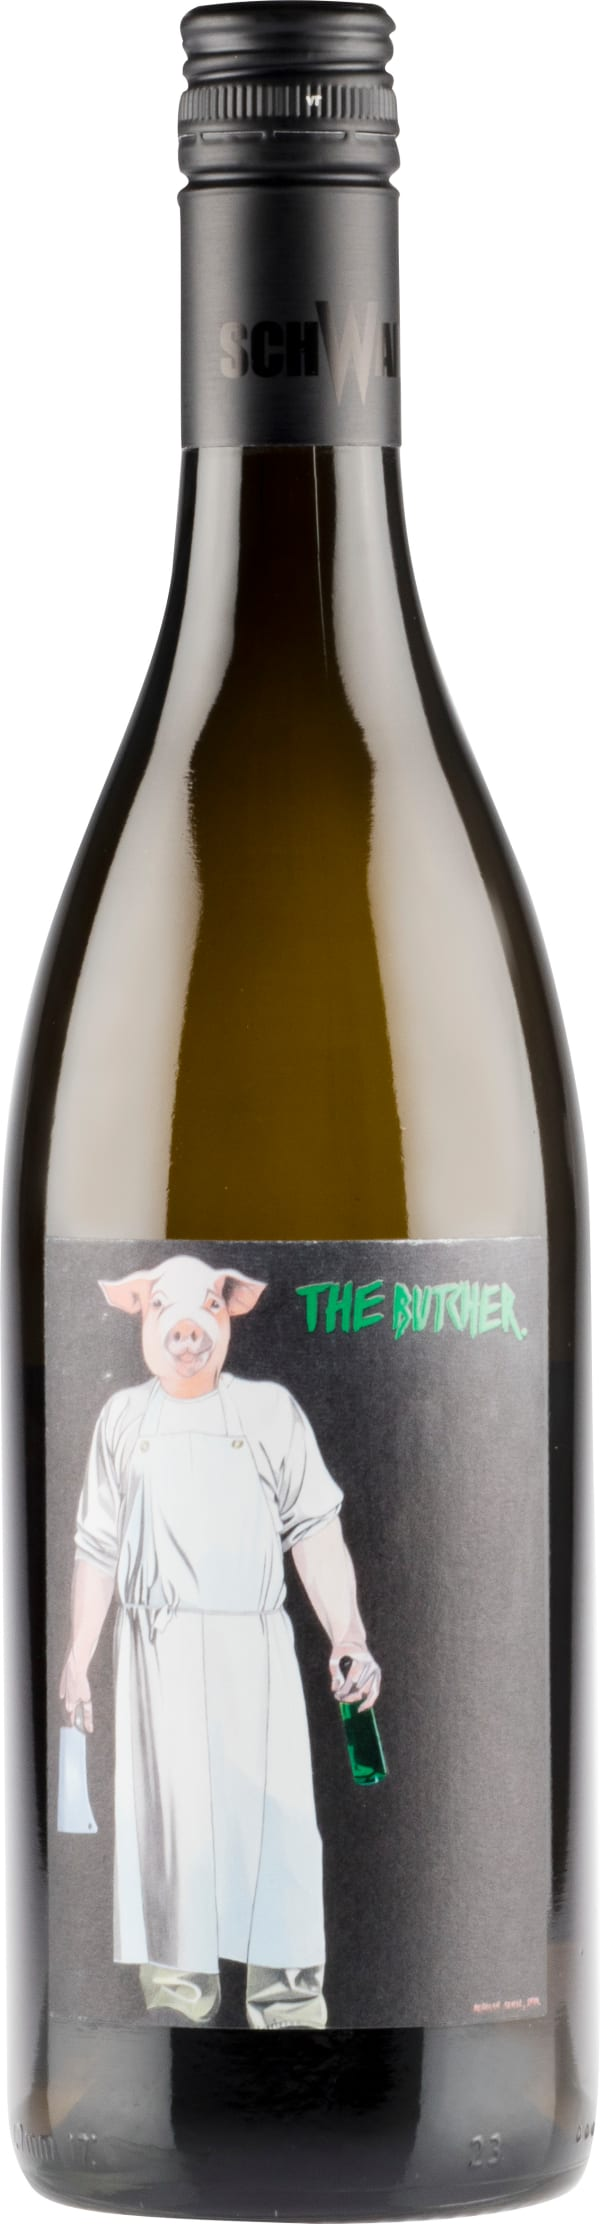 The Butcher Cuvée White 2018